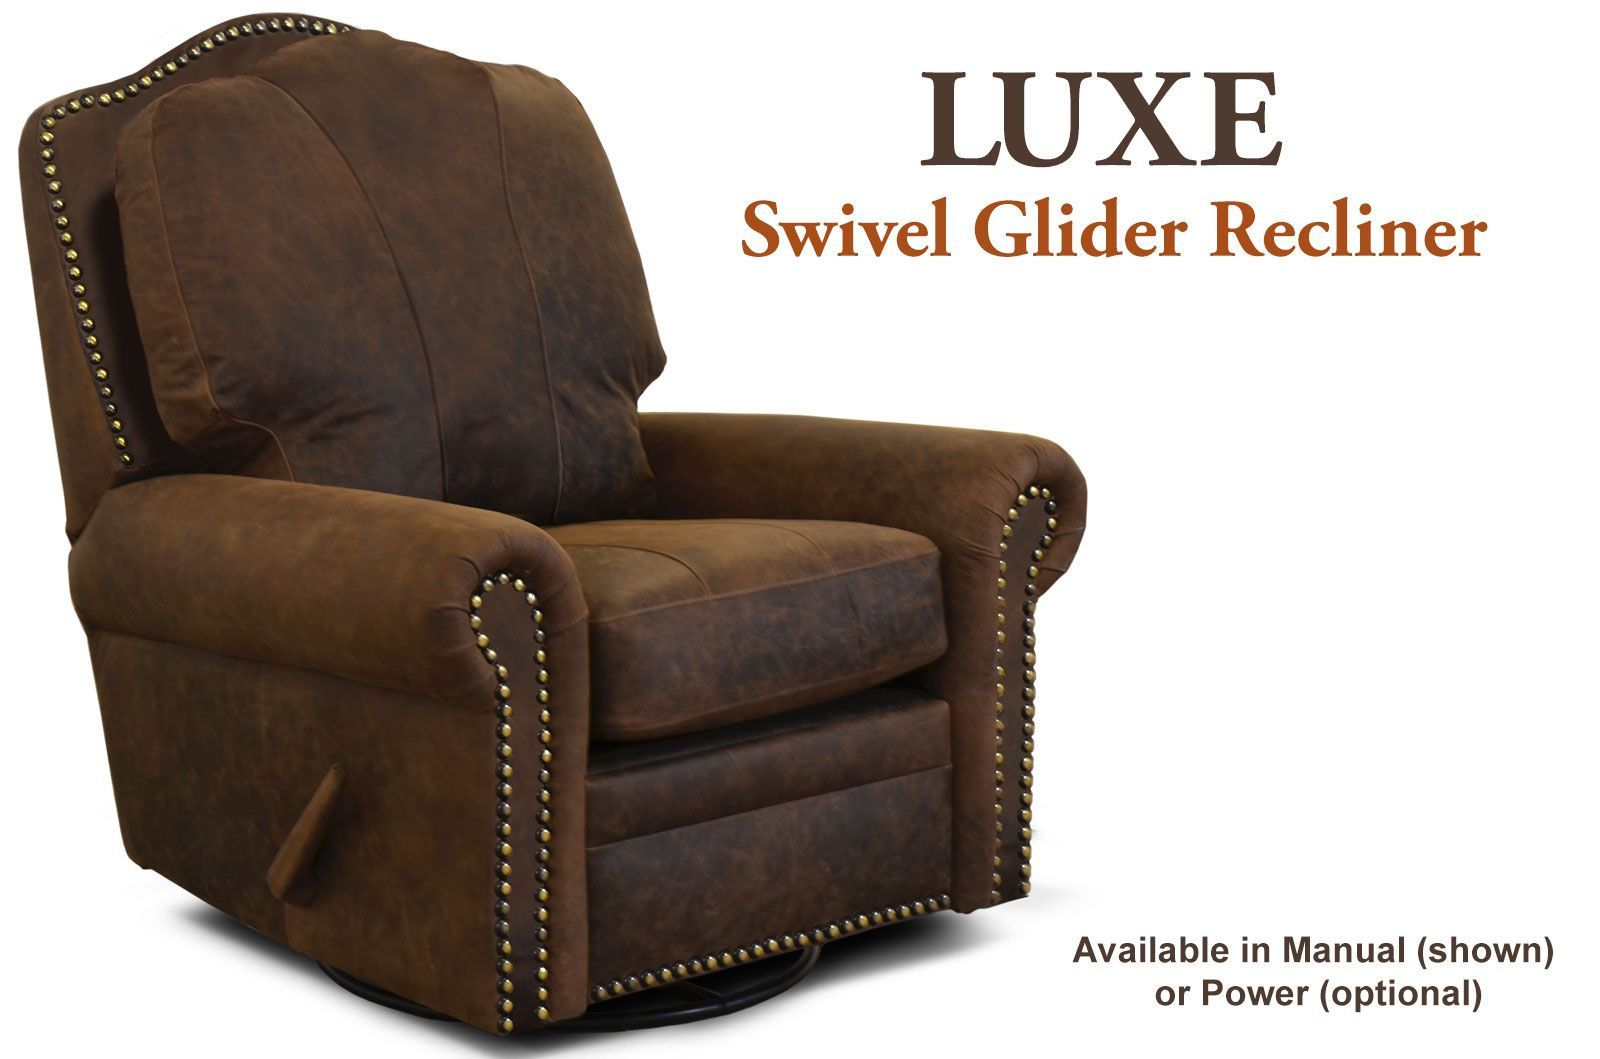 We can custom build this Luxe Swivel Glider Recliner for you in multiple configurations and imported leathers. Need a matching Sofa Love Seat or Ottoman?  sc 1 st  The Leather Sofa Company & Leather Recliners u0026 Incliners u2039u2039 Styles u2039u2039 The Leather Sofa Company islam-shia.org